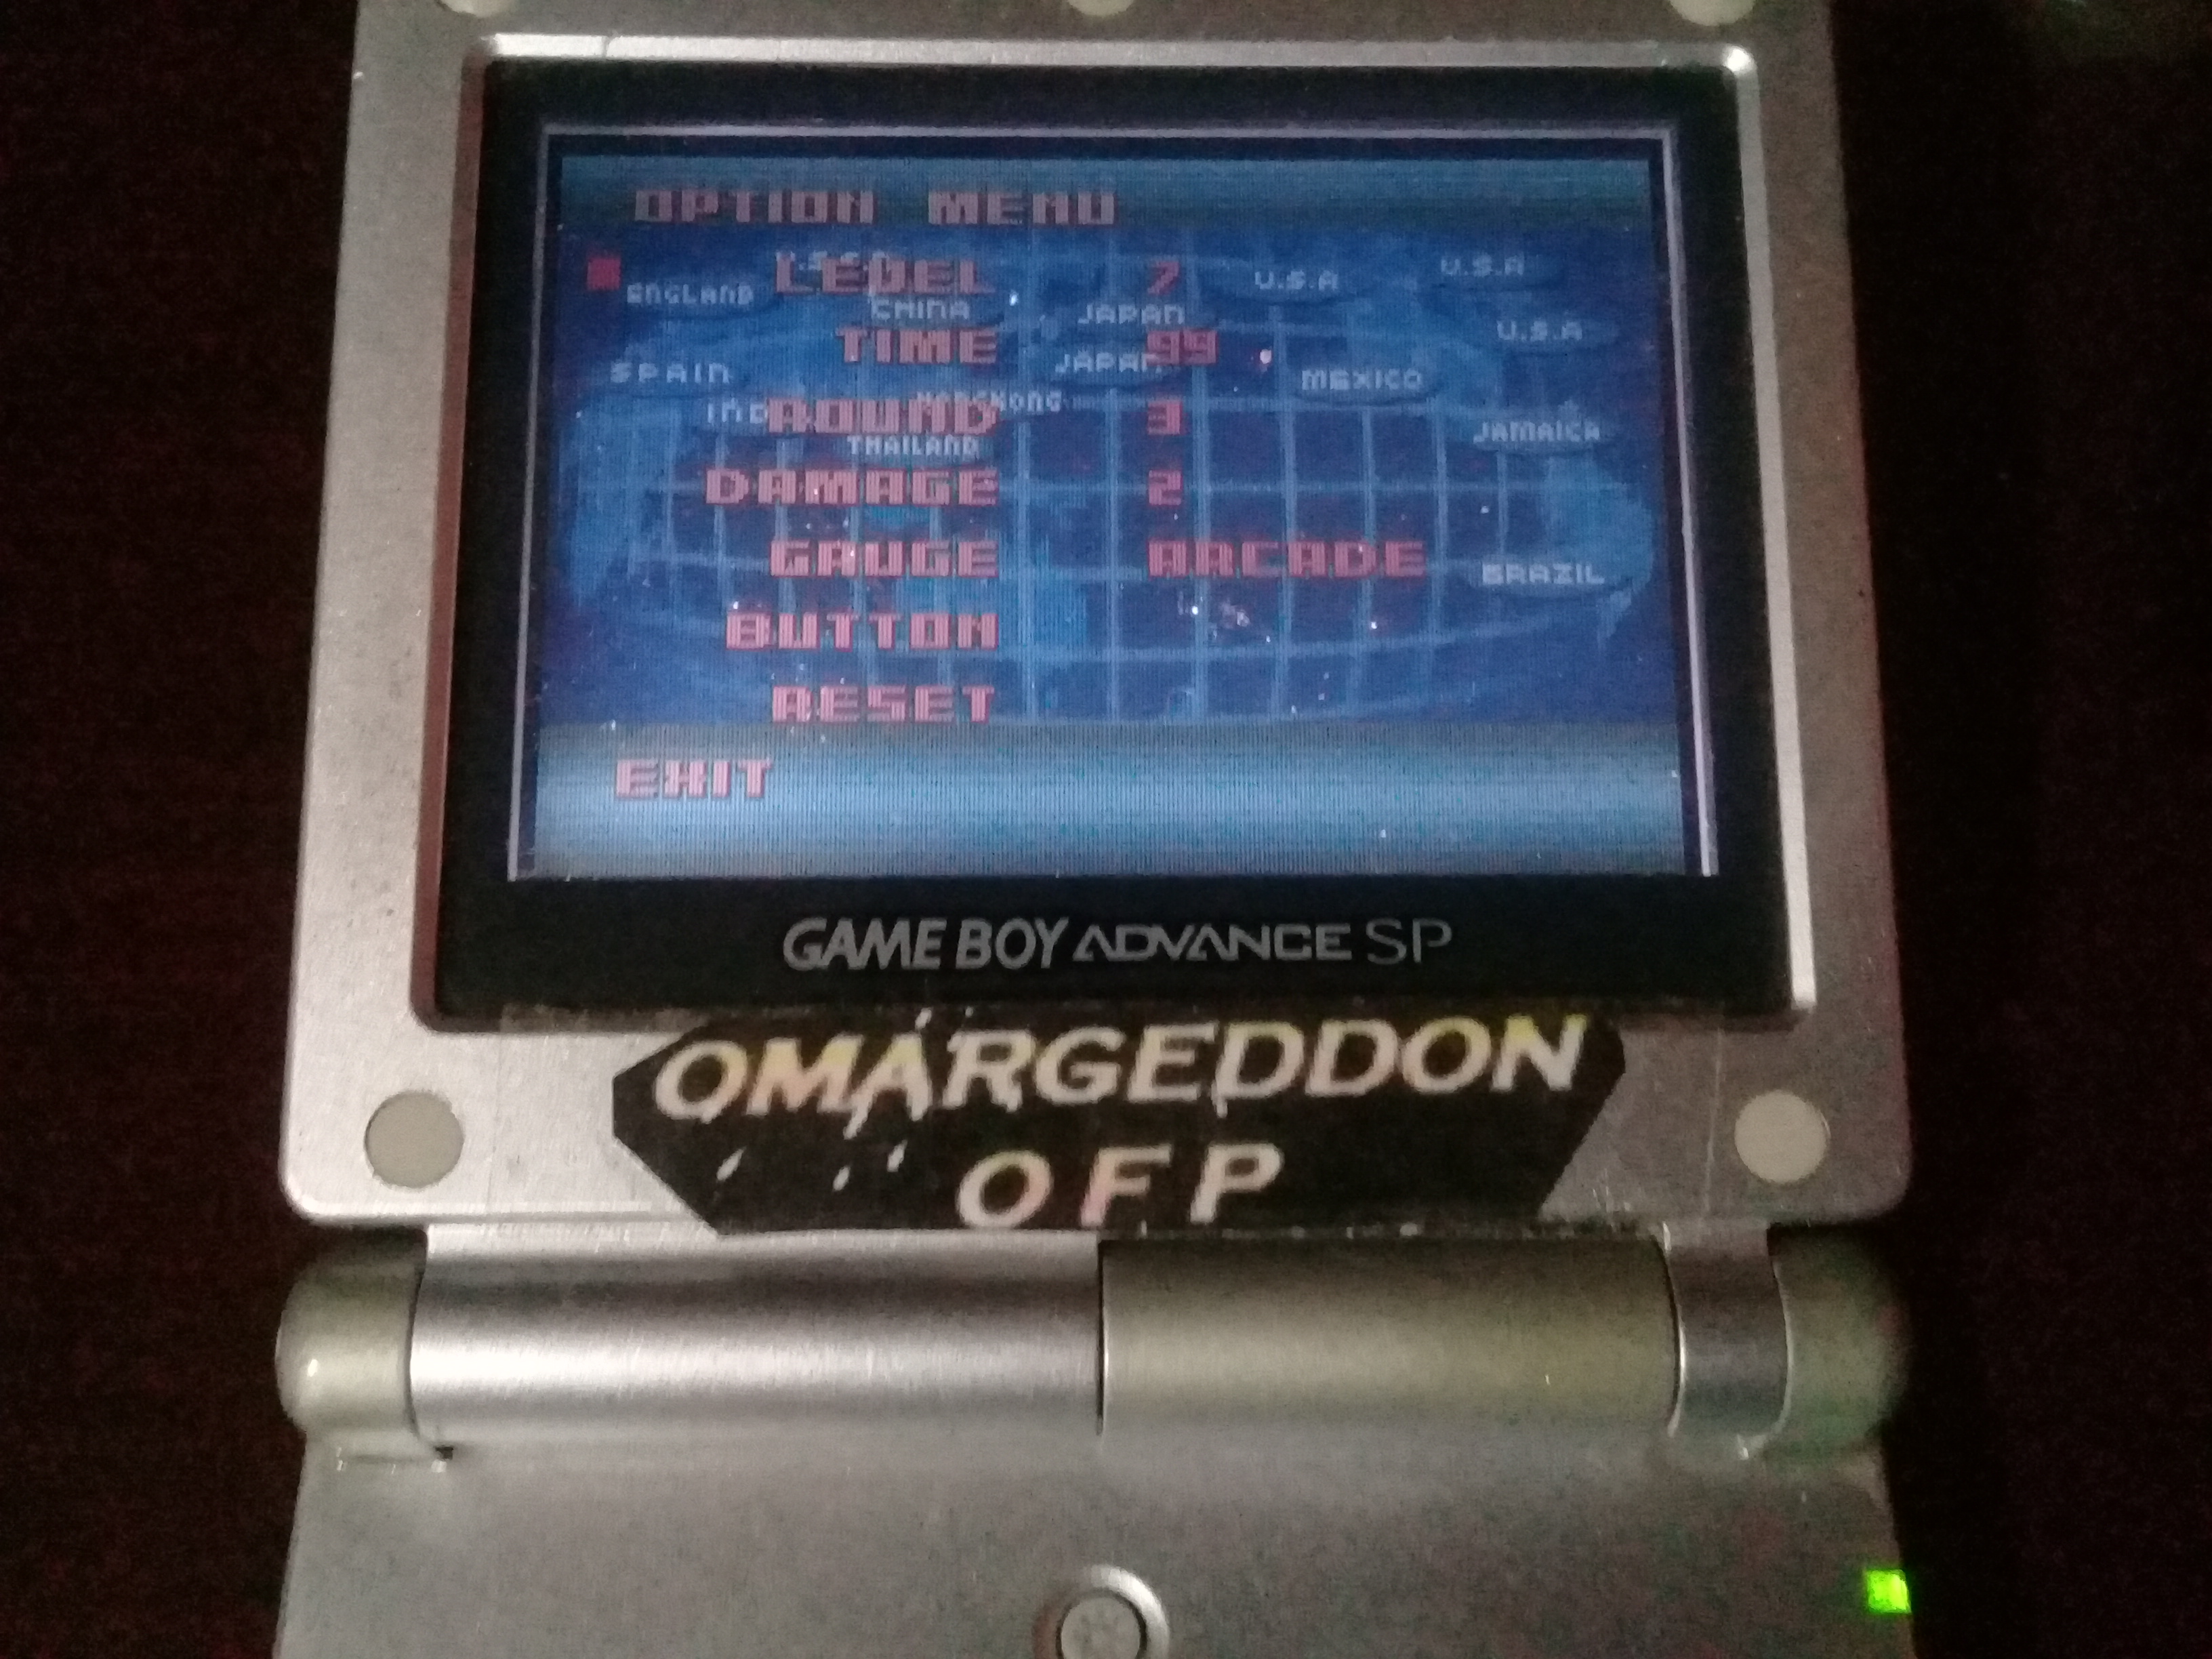 omargeddon: Super Street Fighter II Turbo Revival [Arcade Mode / Difficulty: Level 7] (GBA) 42,200 points on 2019-06-10 15:35:33